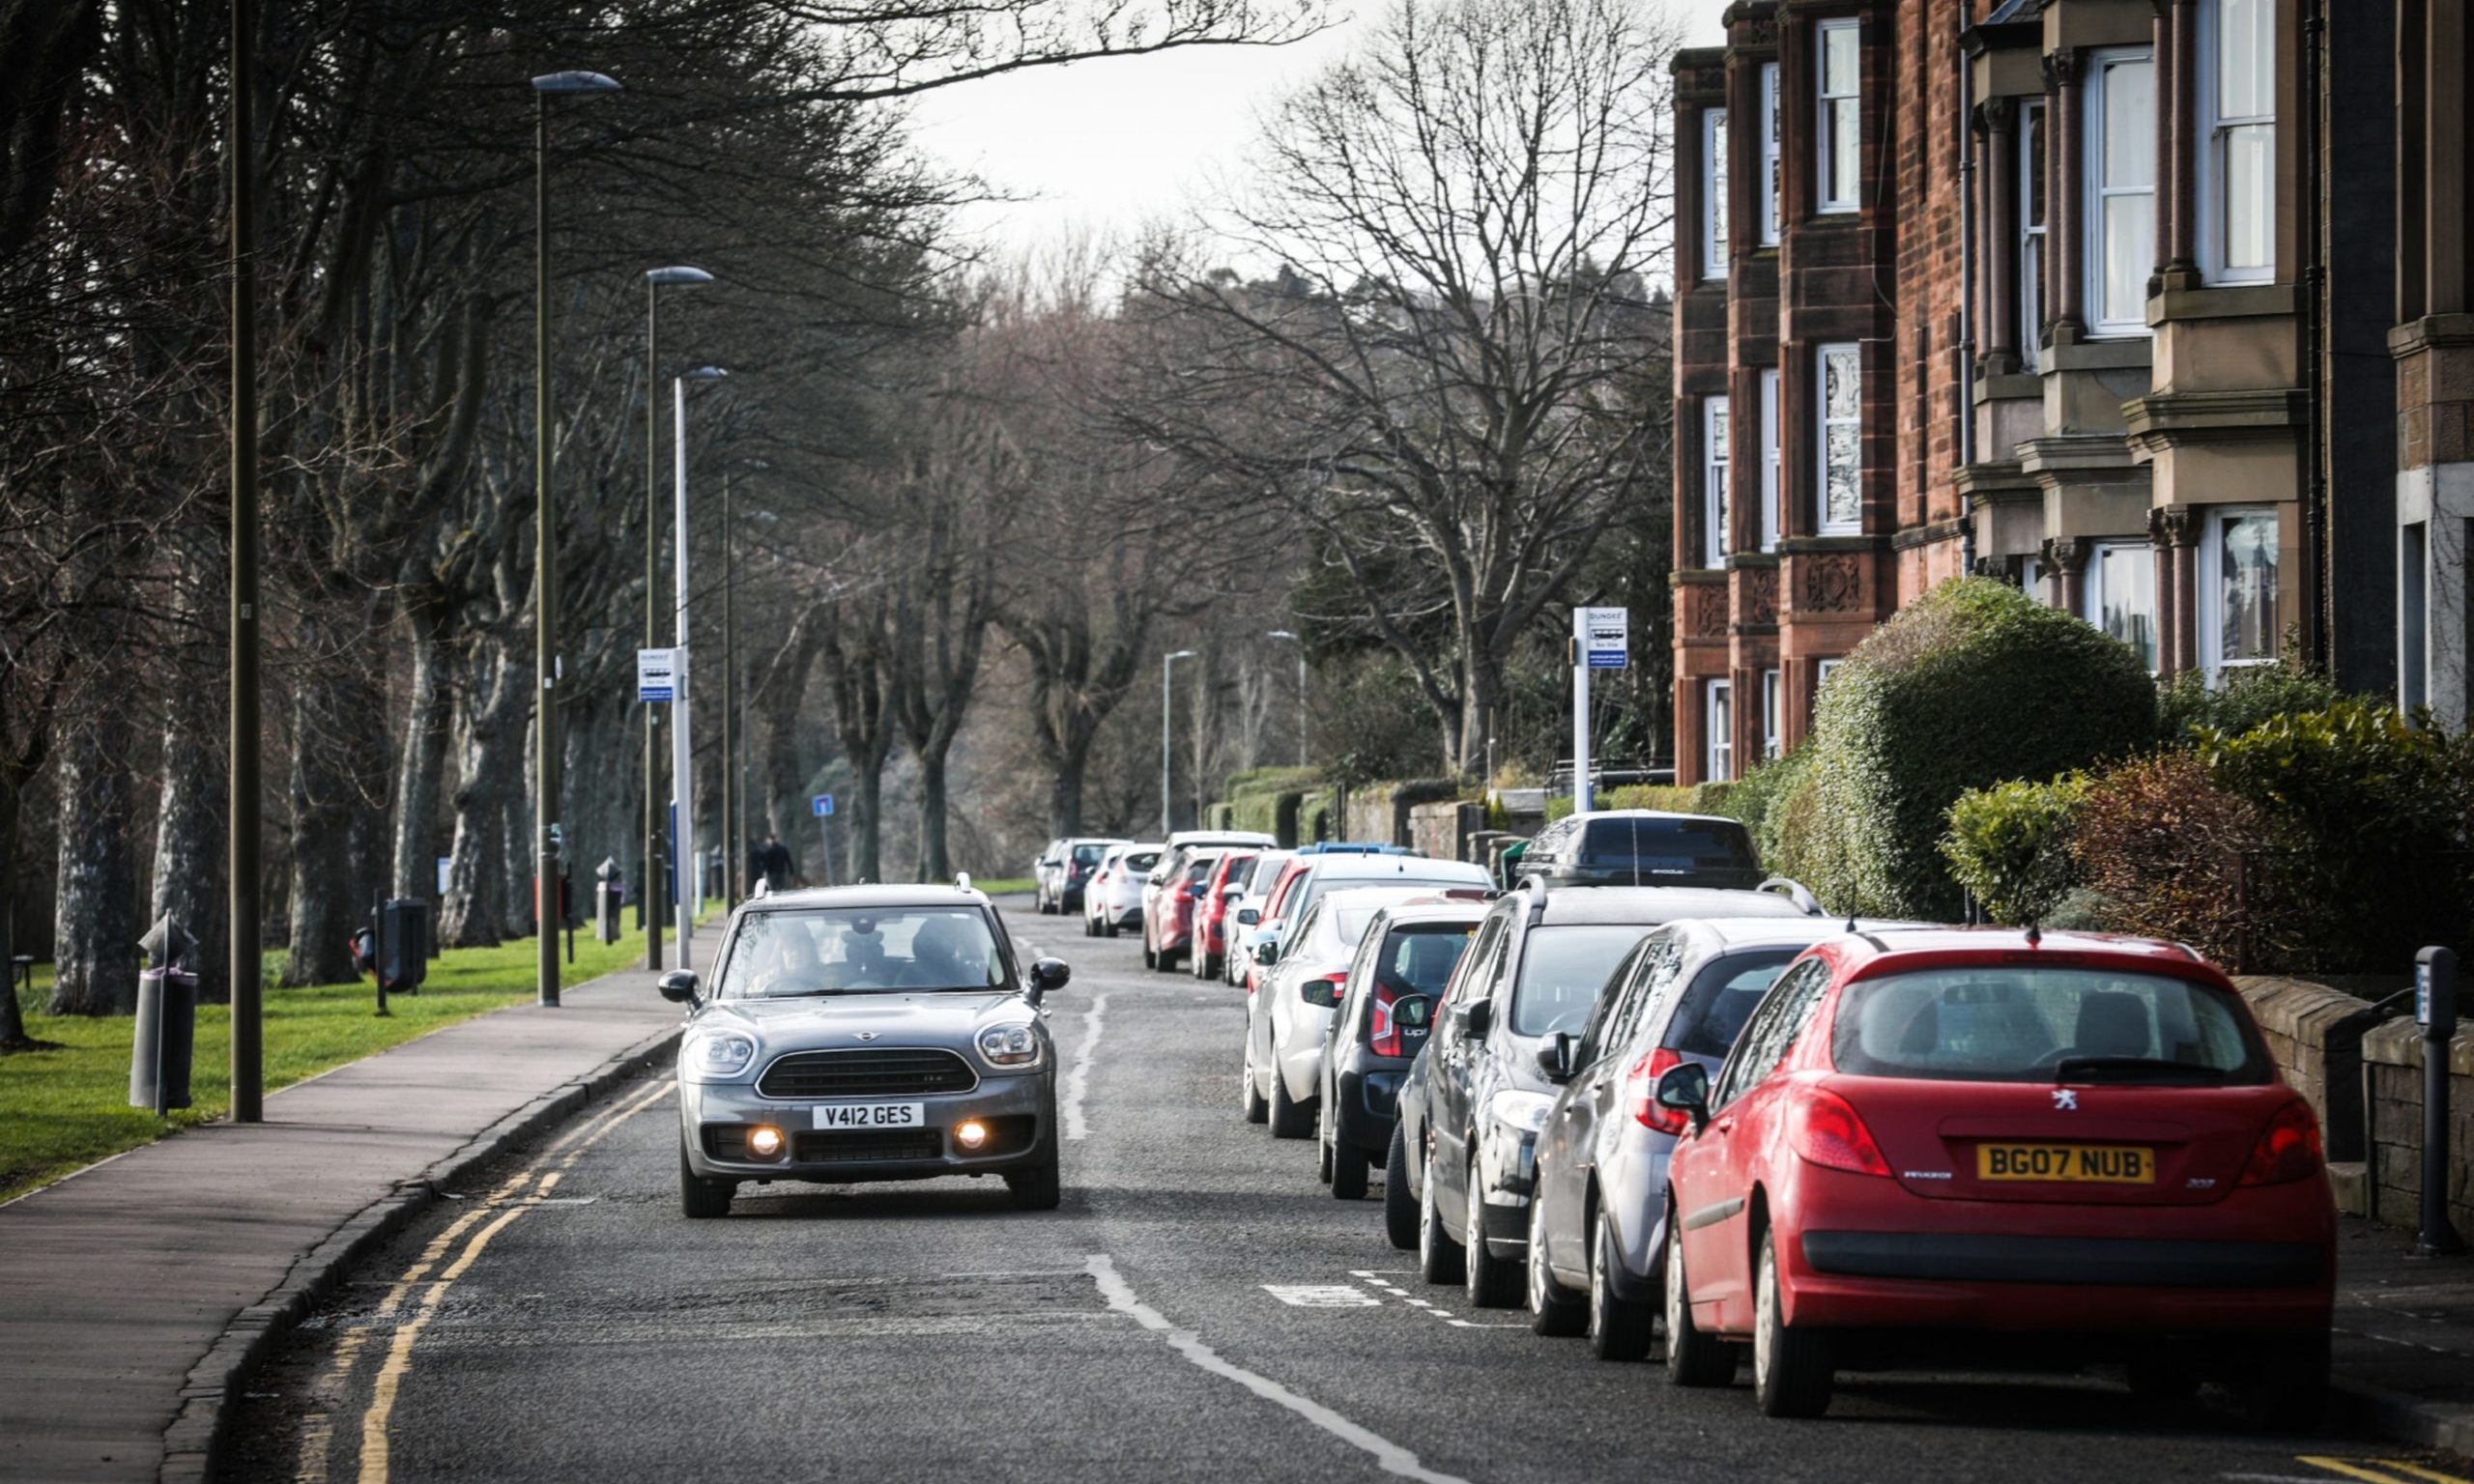 The Evening Telegraph, CR0020417, News, GV's of Magdalen Yard Road in Dundee's West End to go with story about a report showing cars have consistently been going over the speed limit here. Picture shows; cars on Magdalen Yard Road. Wednesday 11th March, 2020. Mhairi Edwards/DCT Media